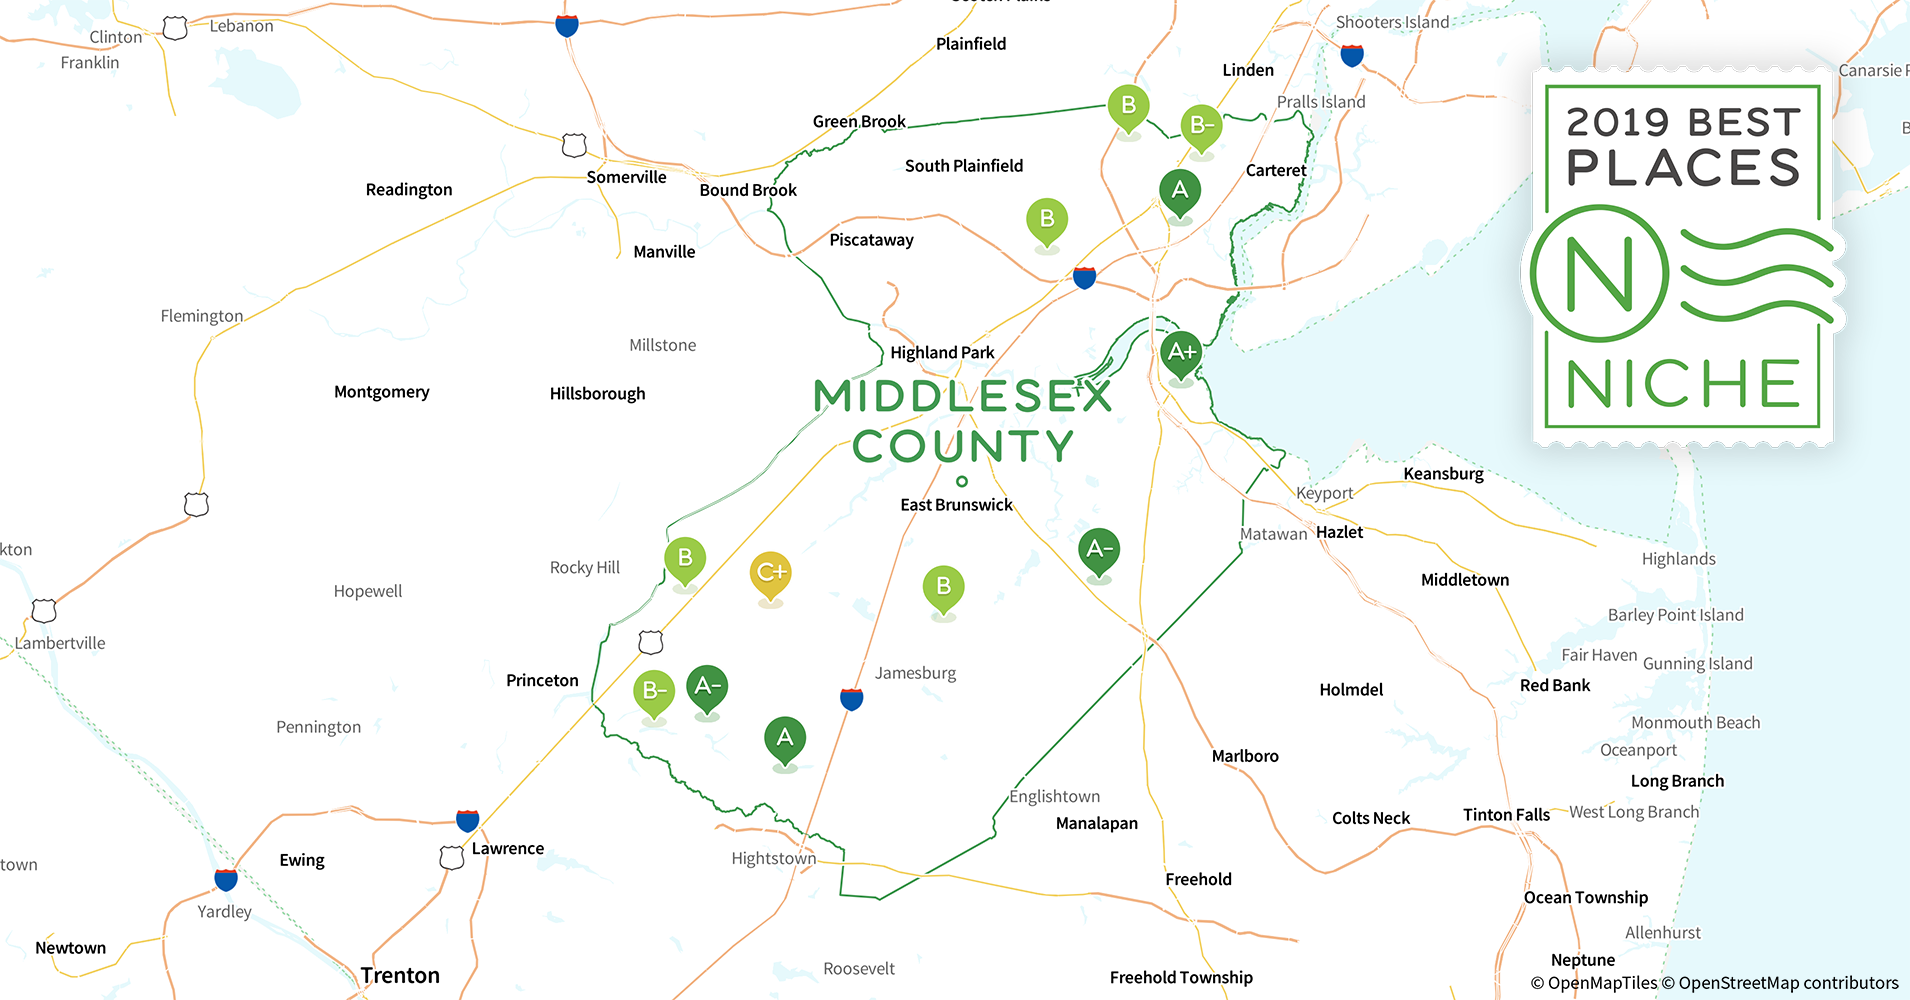 2019 Best Places To Live In Middlesex County Nj Niche